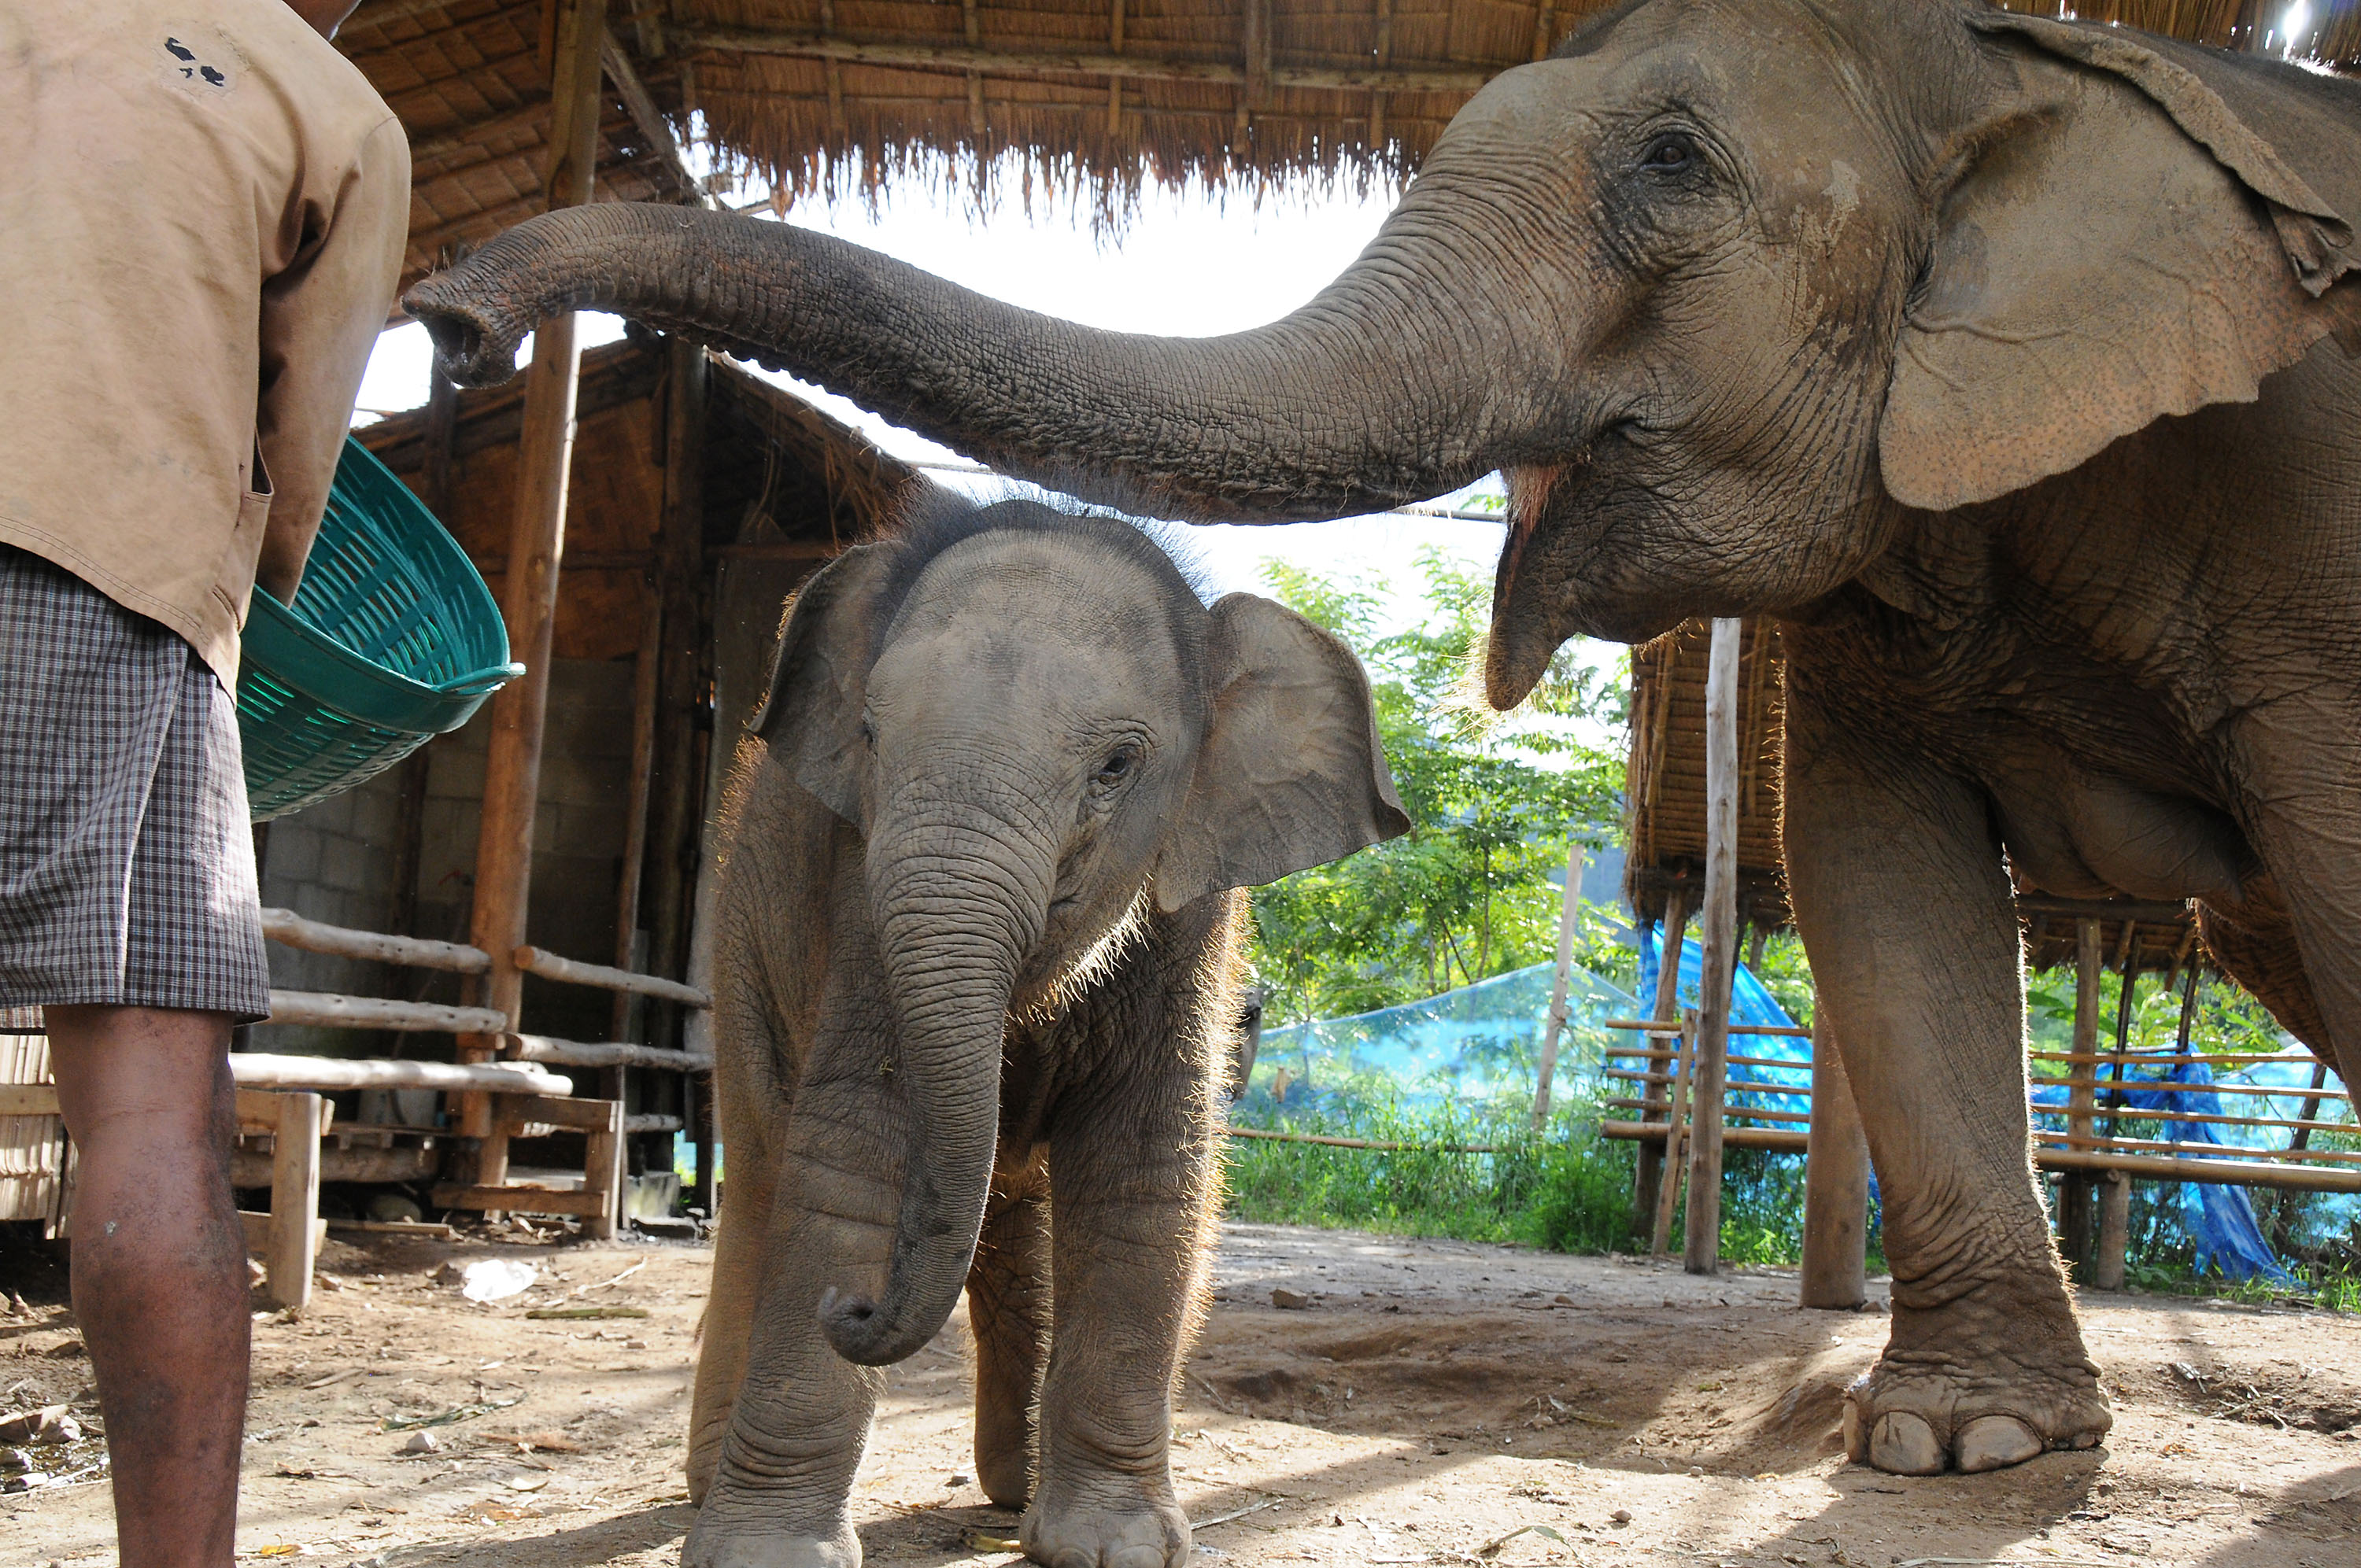 A male calf named Tong Kham, 4 months, and his mother, Mae Boon Chu, enjoy the pampered life at Elephant Nature Park in Chiang Mai province, Thailand....